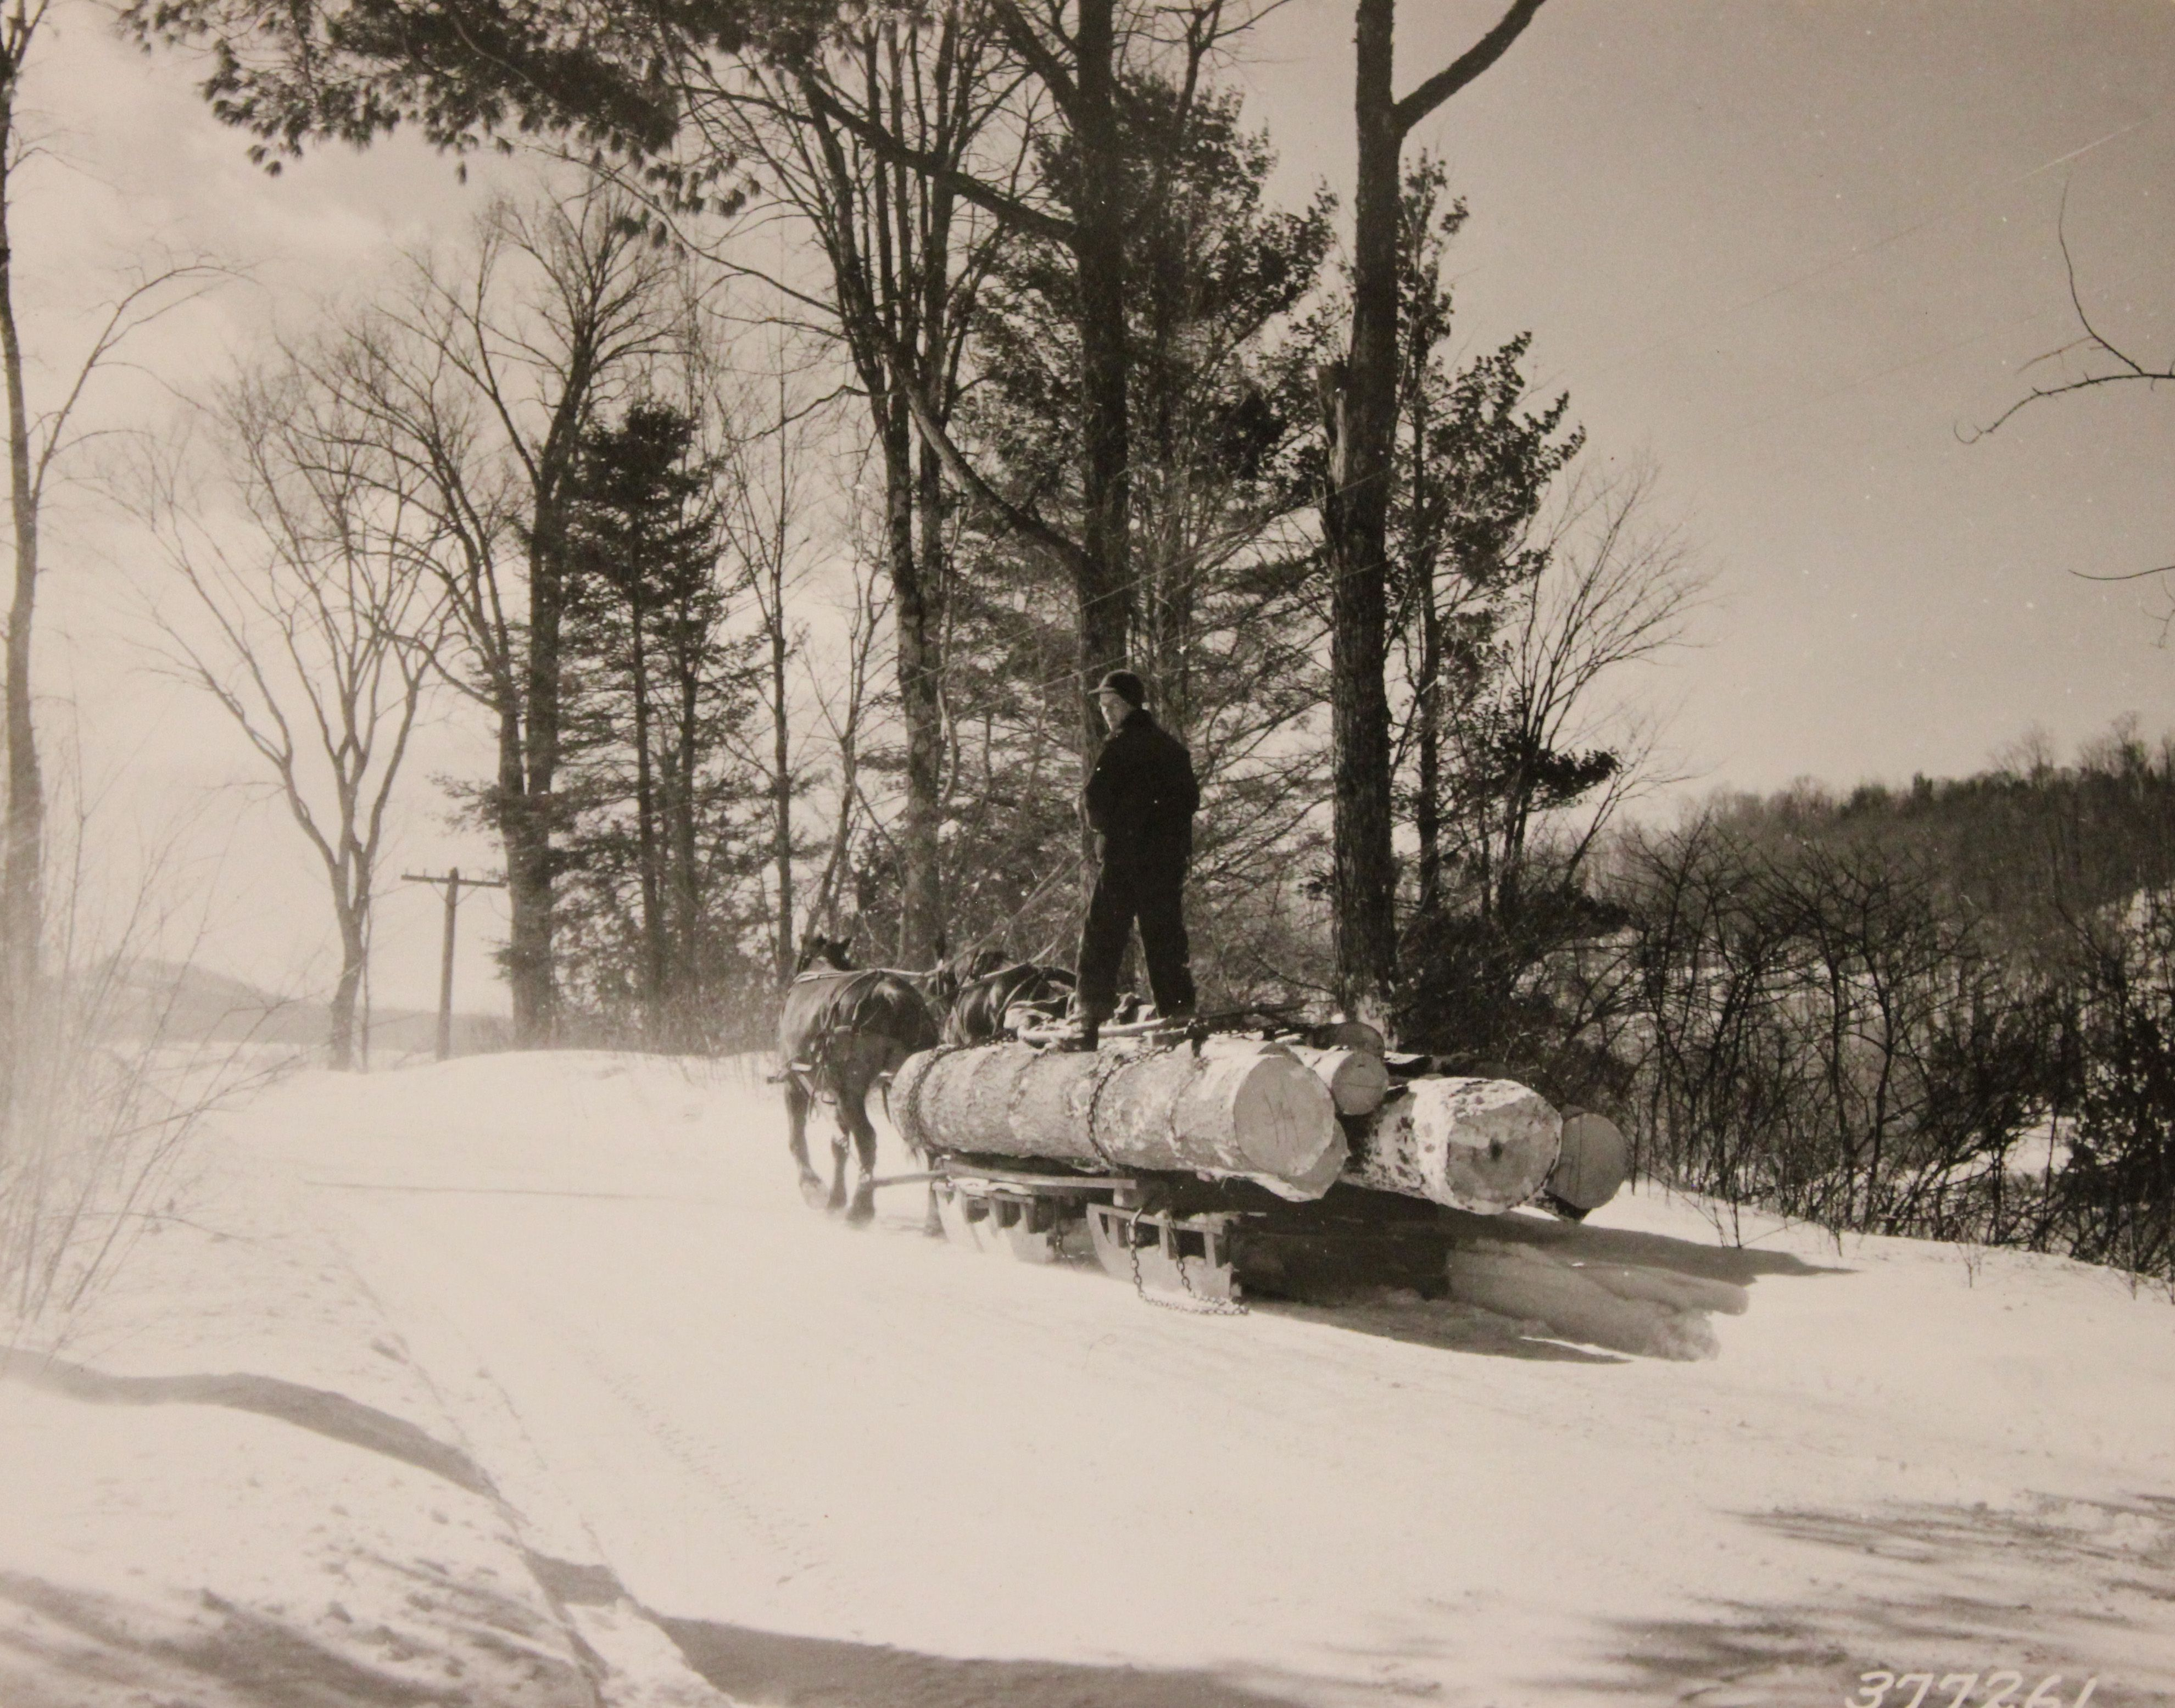 horse drawn sled images HorseDrawn Sled Hauling Logs in